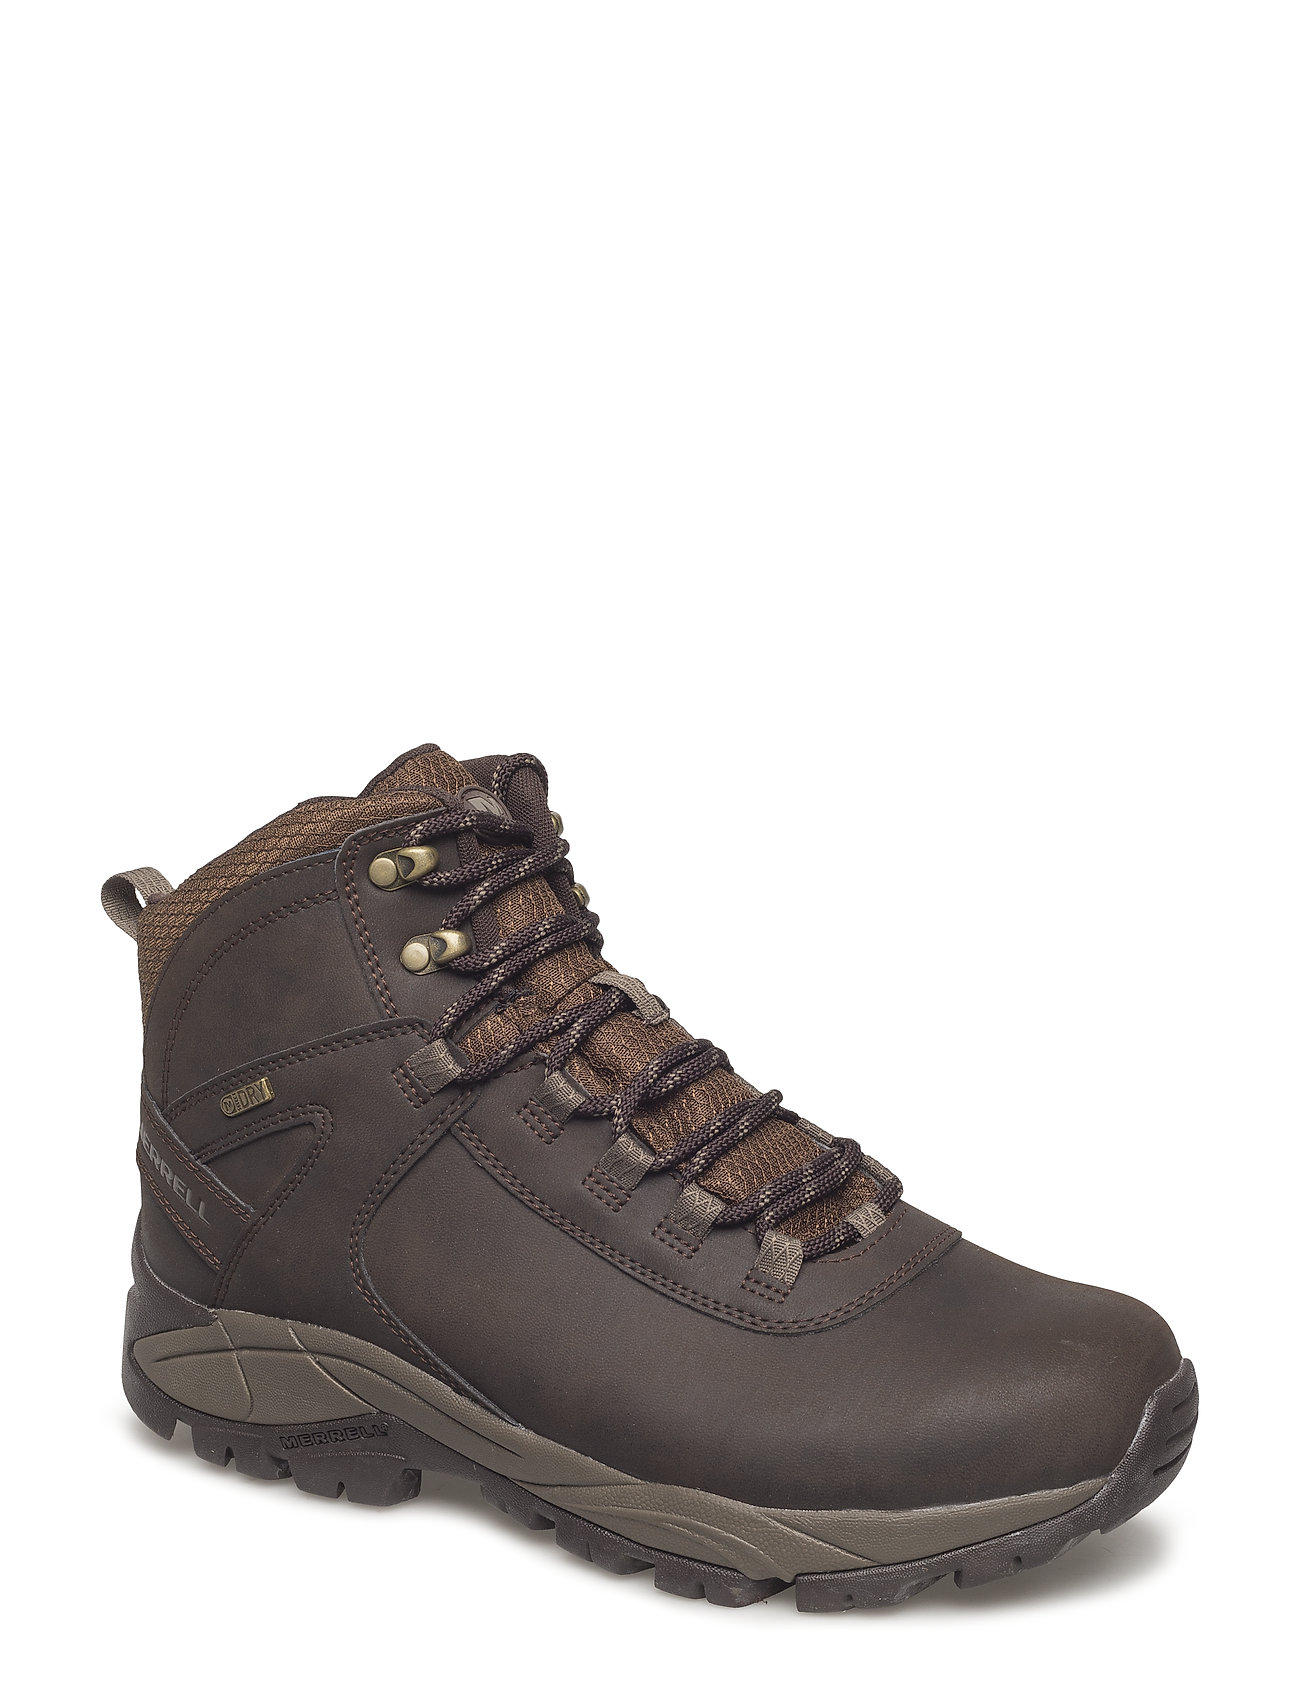 Image of Vego Mid Lthr Wtpf Black Shoes Sport Shoes Outdoor/hiking Shoes Brun Merrell (3406146927)